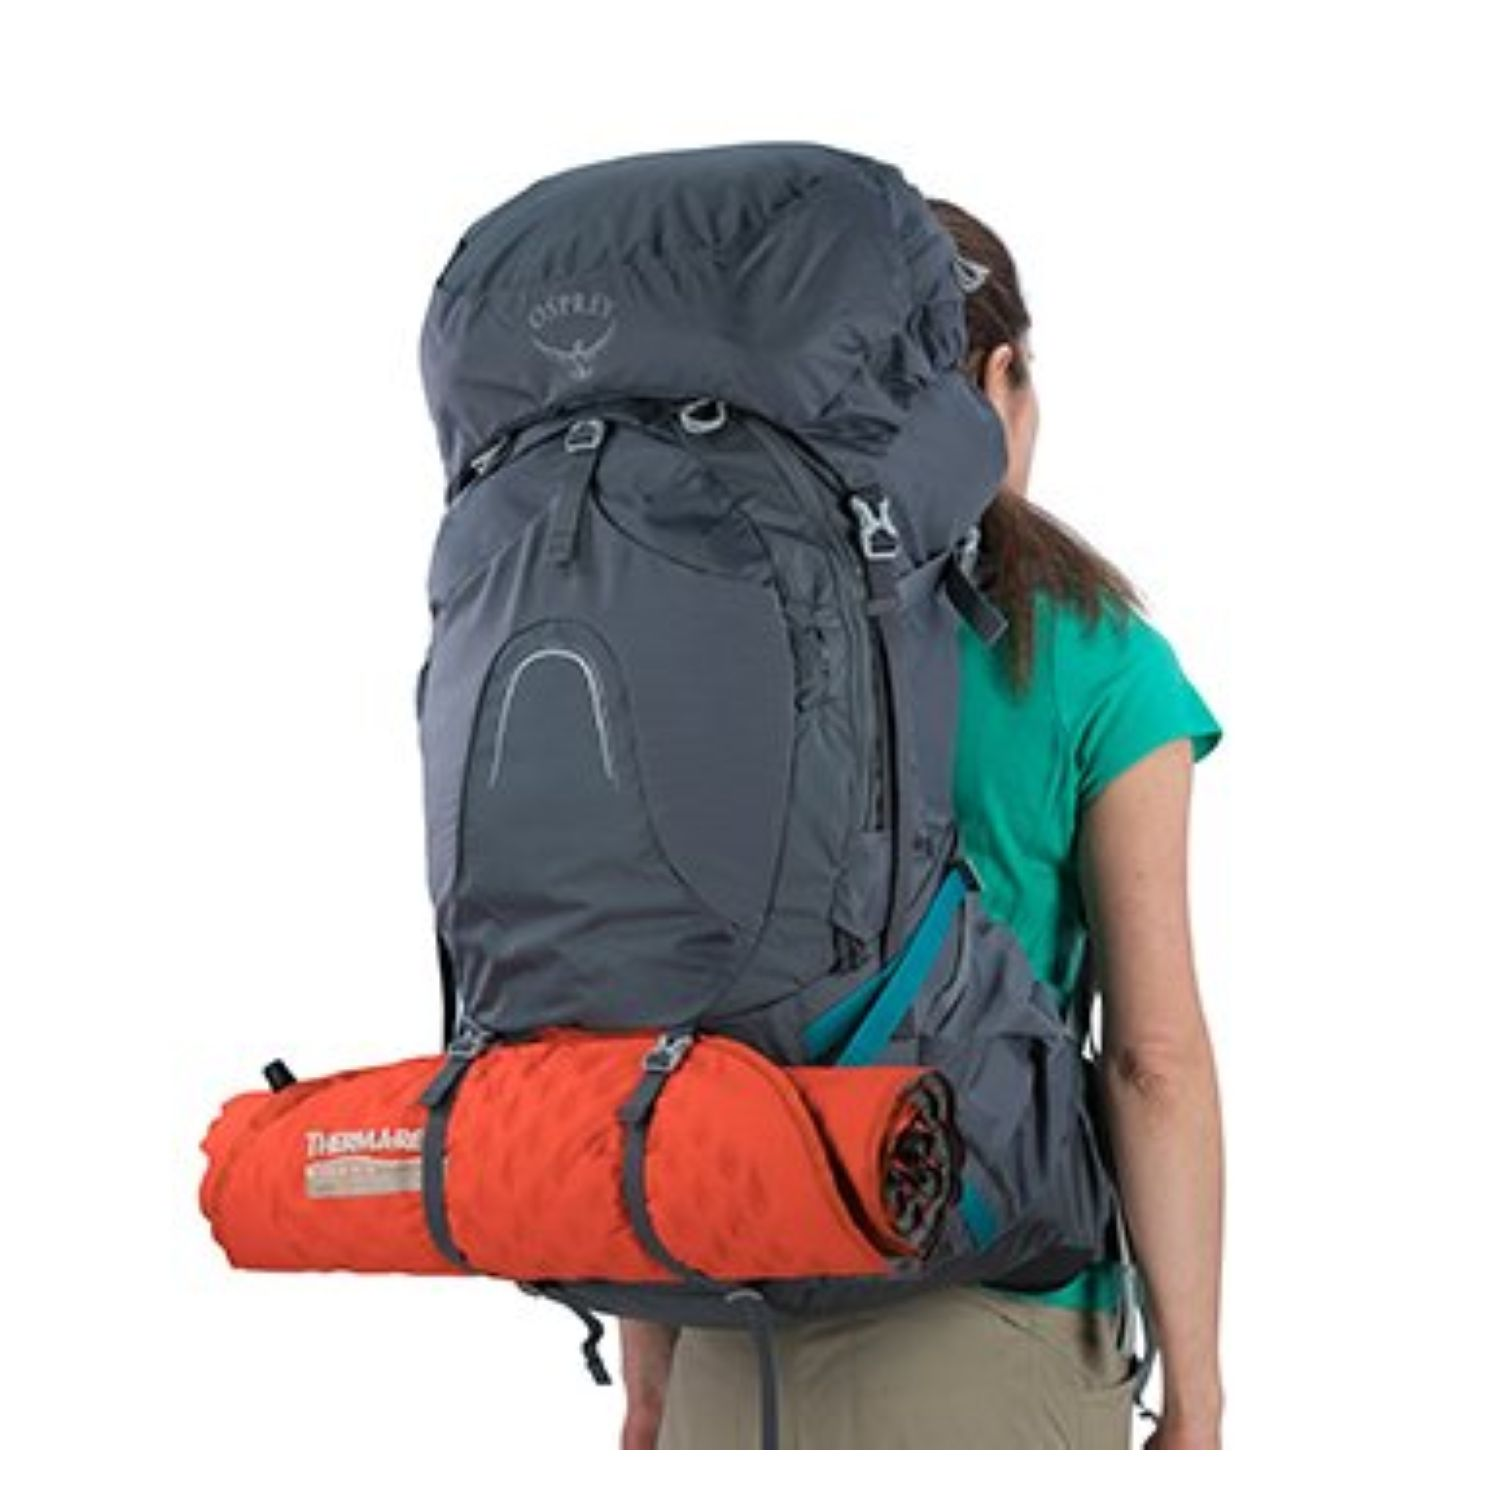 19c29e204d Buy Osprey Aura Ag 65 Backpack Wxs - Vestal Grey in Singapore ...